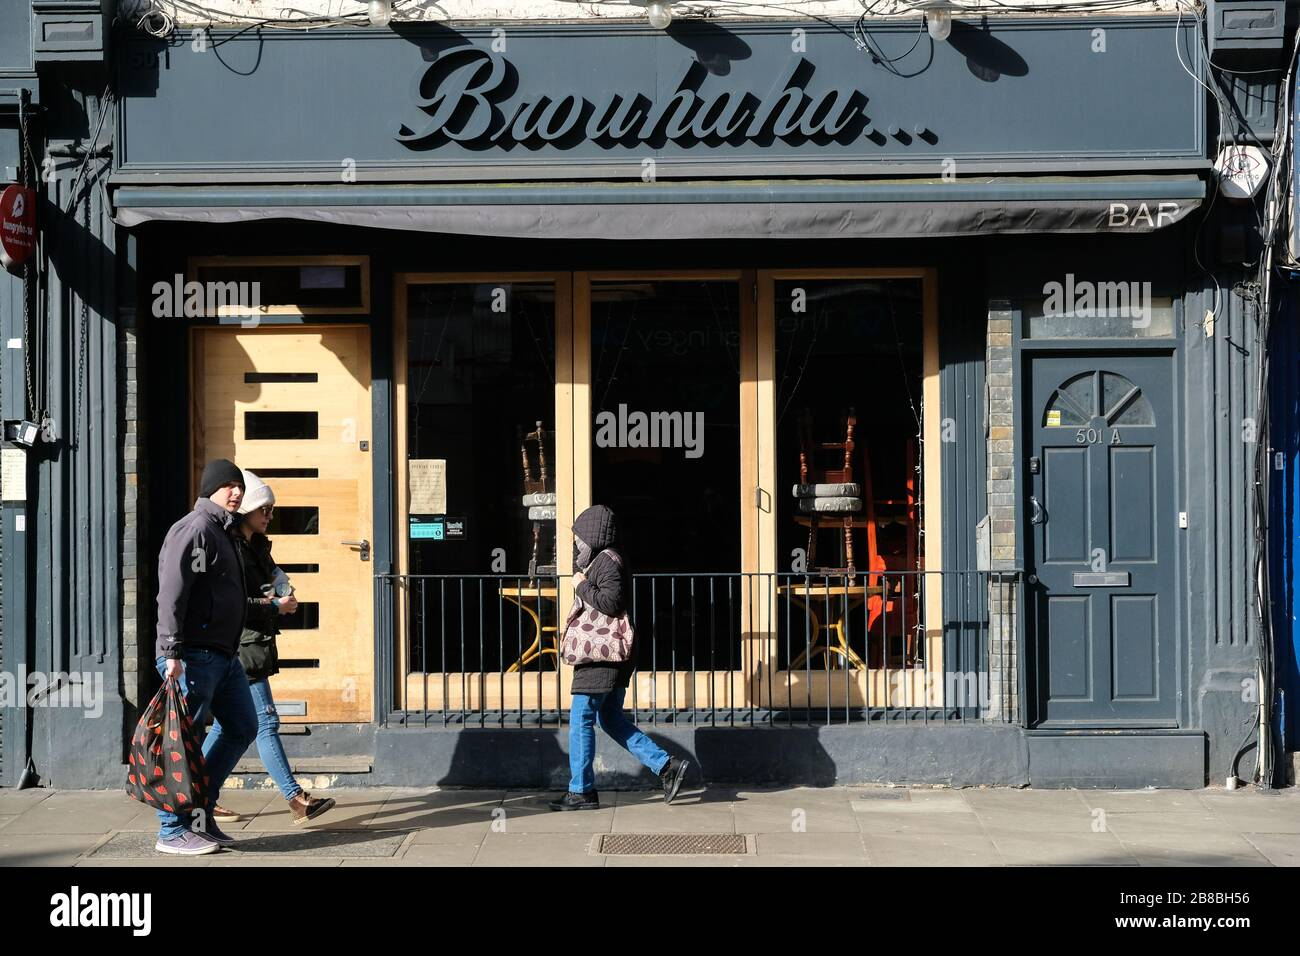 Green Lanes, London, UK. 21st March 2020. Coronavirus: Nearly deserted streets and all restaurants and cafes are closed in the Turkish area of Green Lanes in Haringey. Credit: Matthew Chattle/Alamy Live News Stock Photo